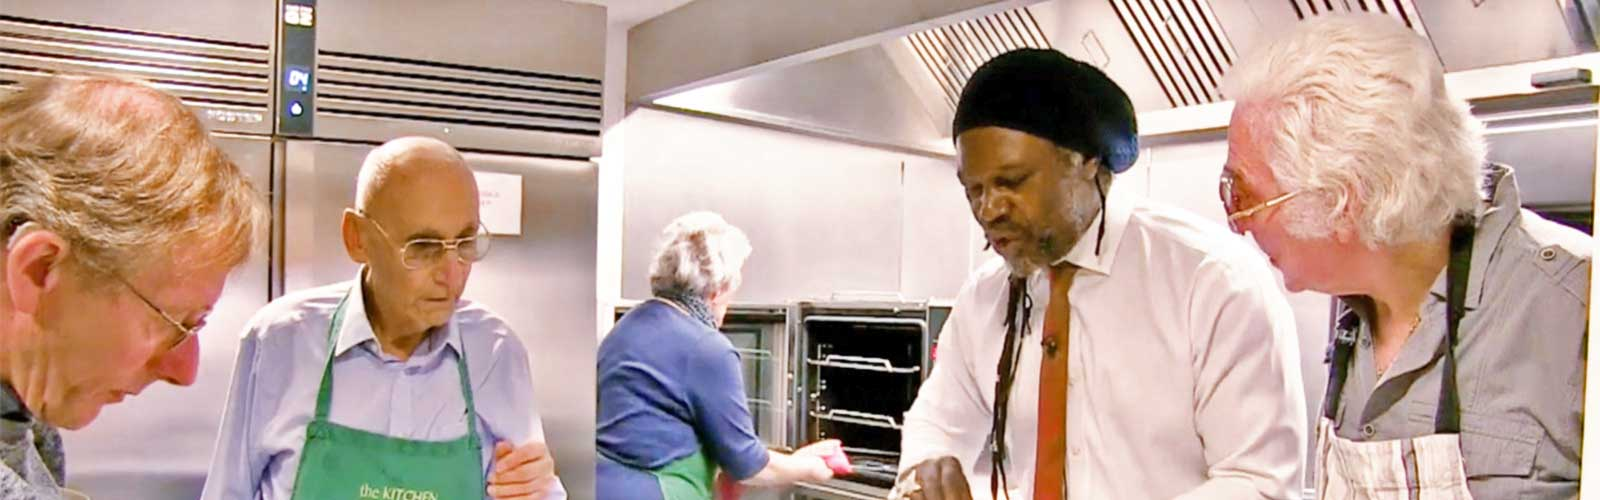 Chef and businessman Levi Roots, hosting an Age Uk cookery class